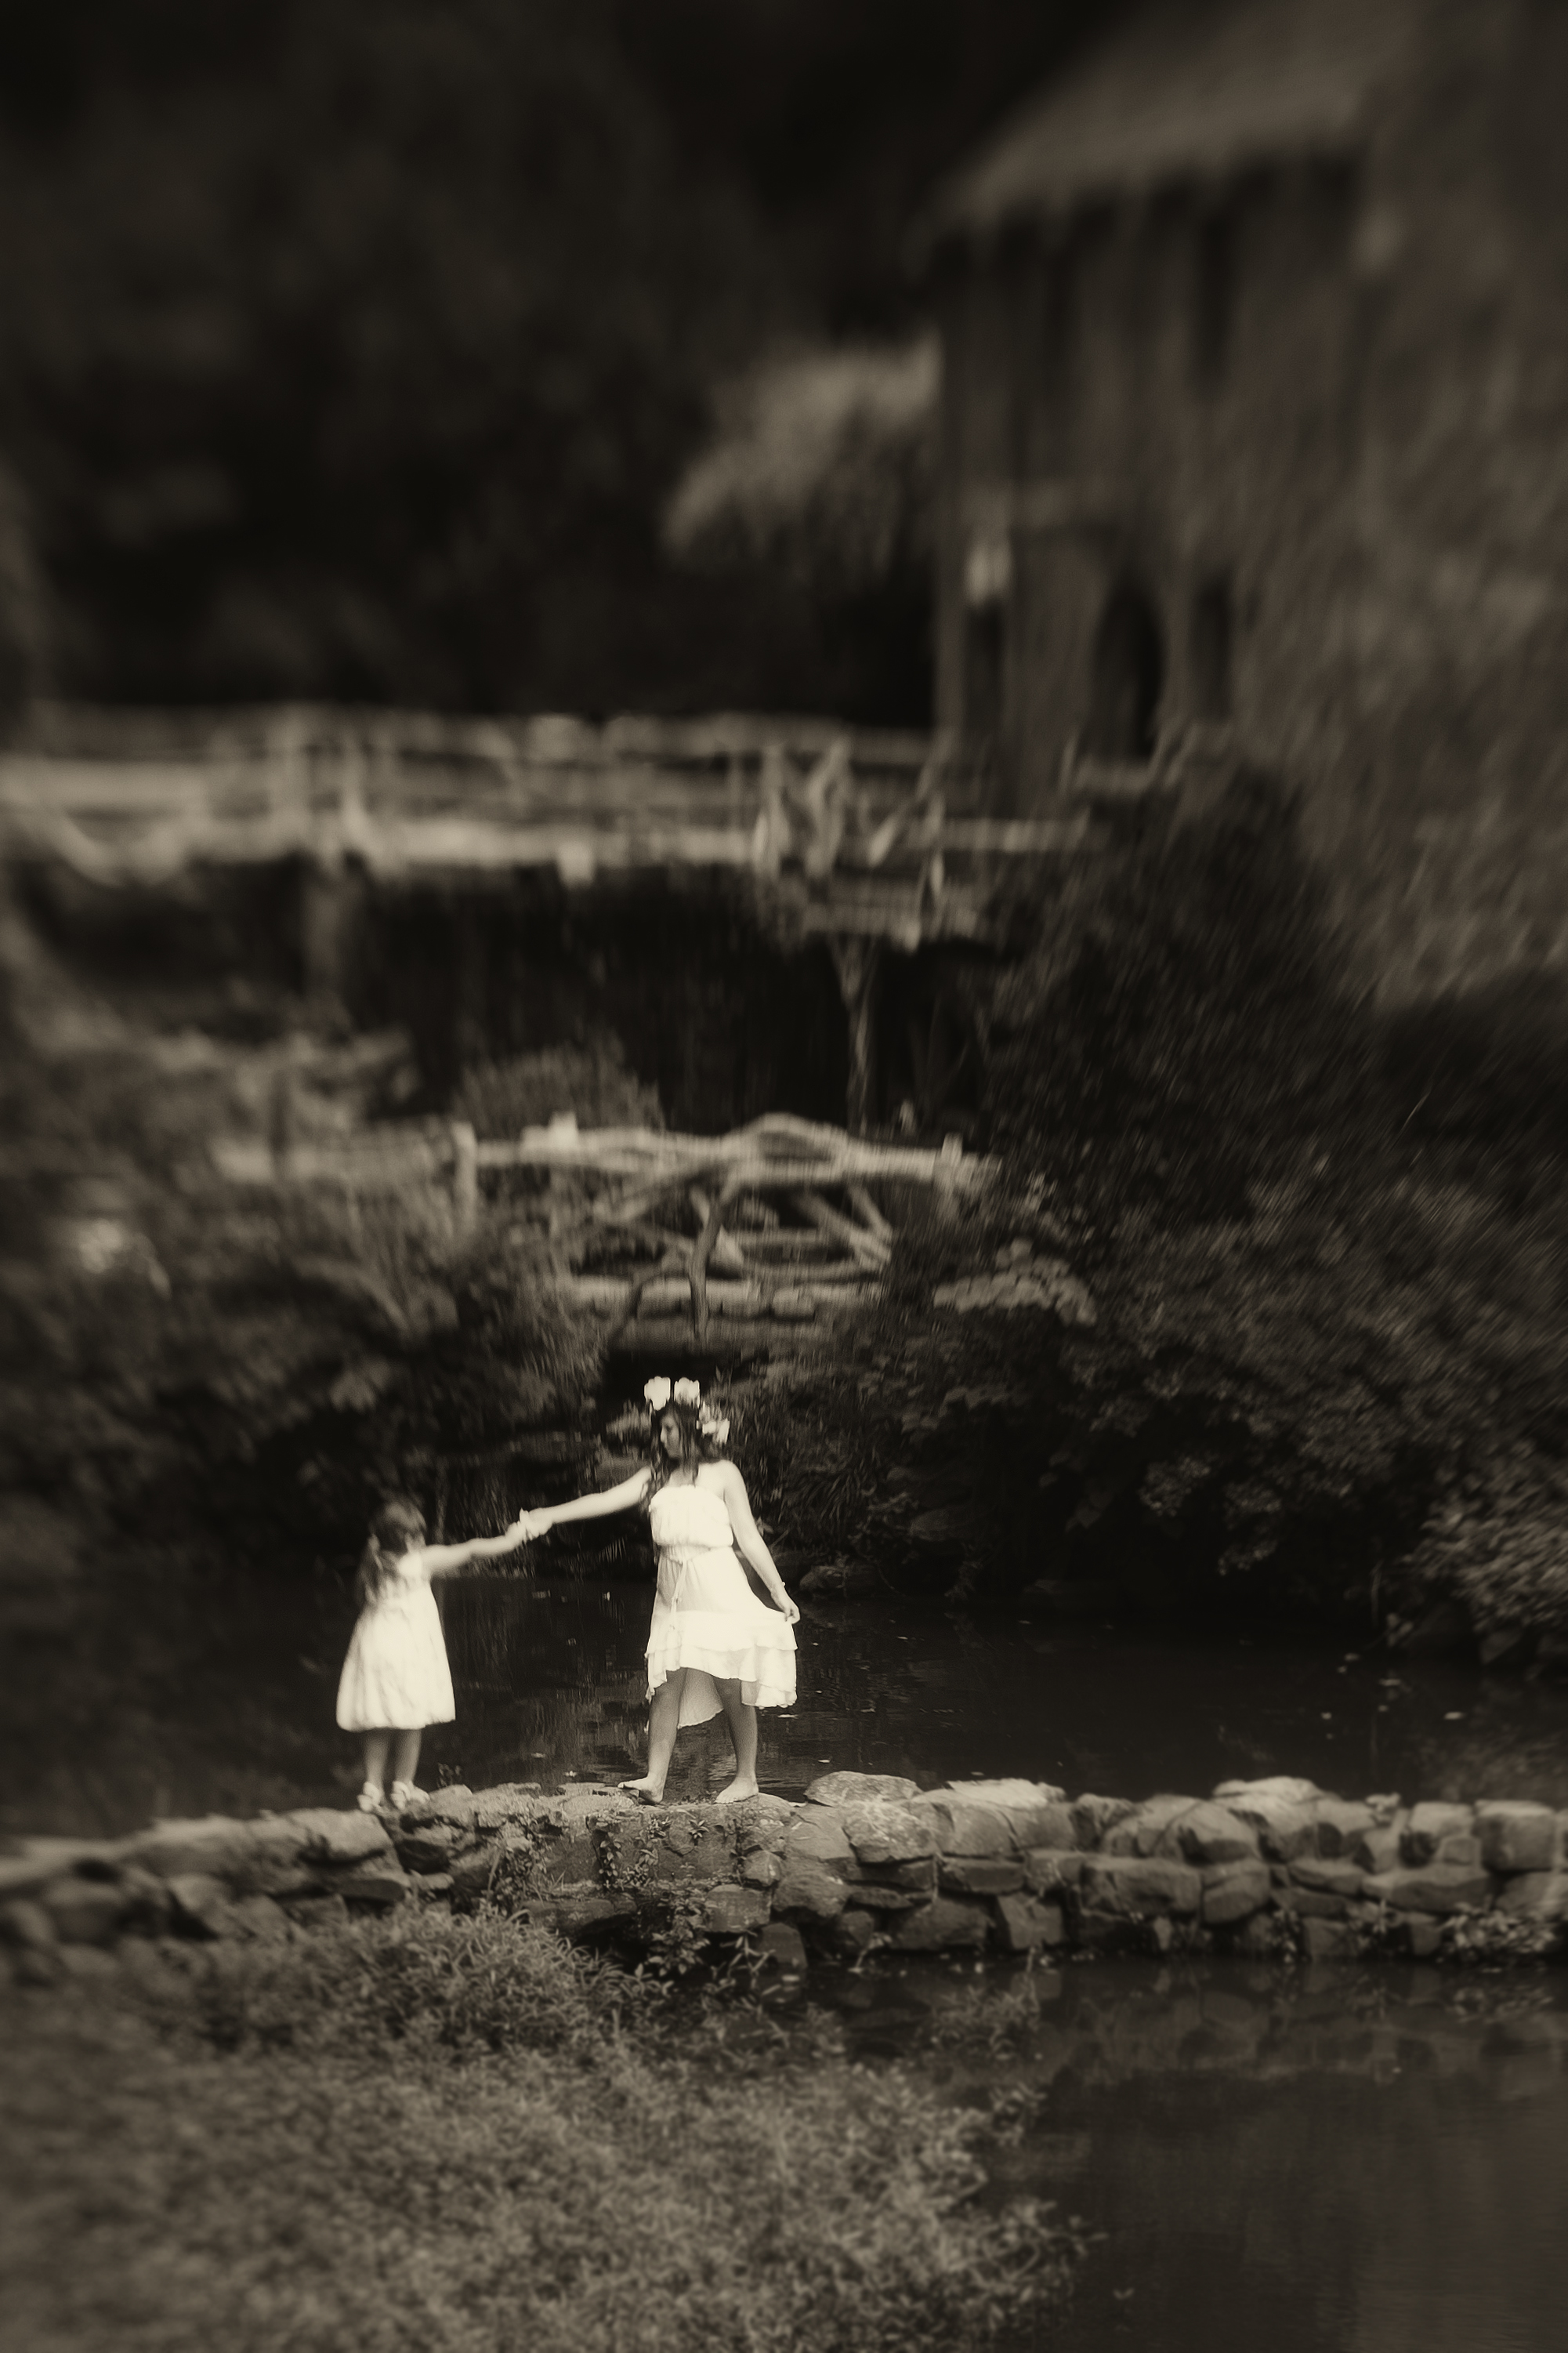 Girls at the Old Mill by John Baltz